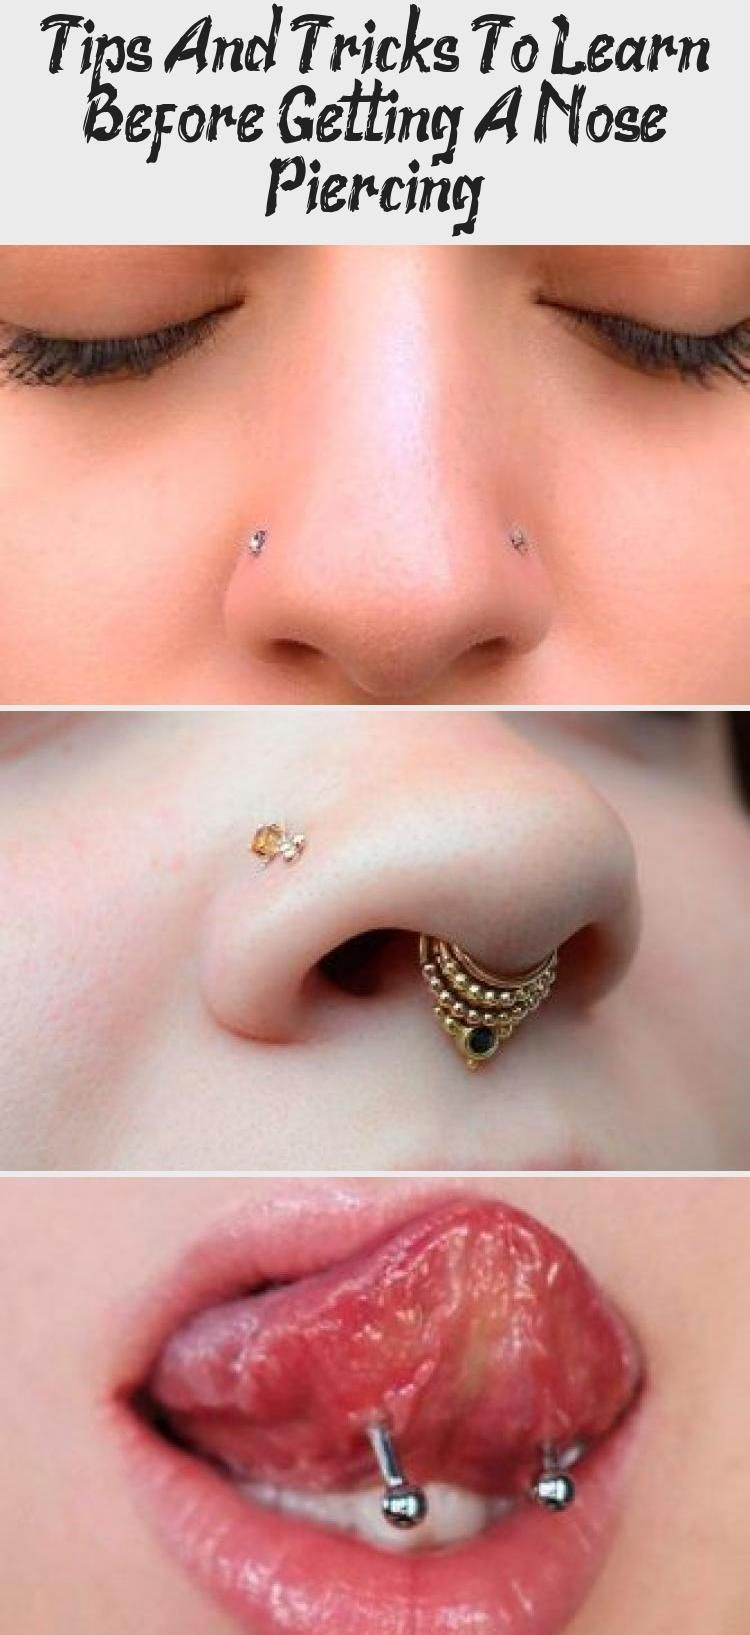 Tips And Tricks To Learn Before Getting A Nose Piercing Piercing